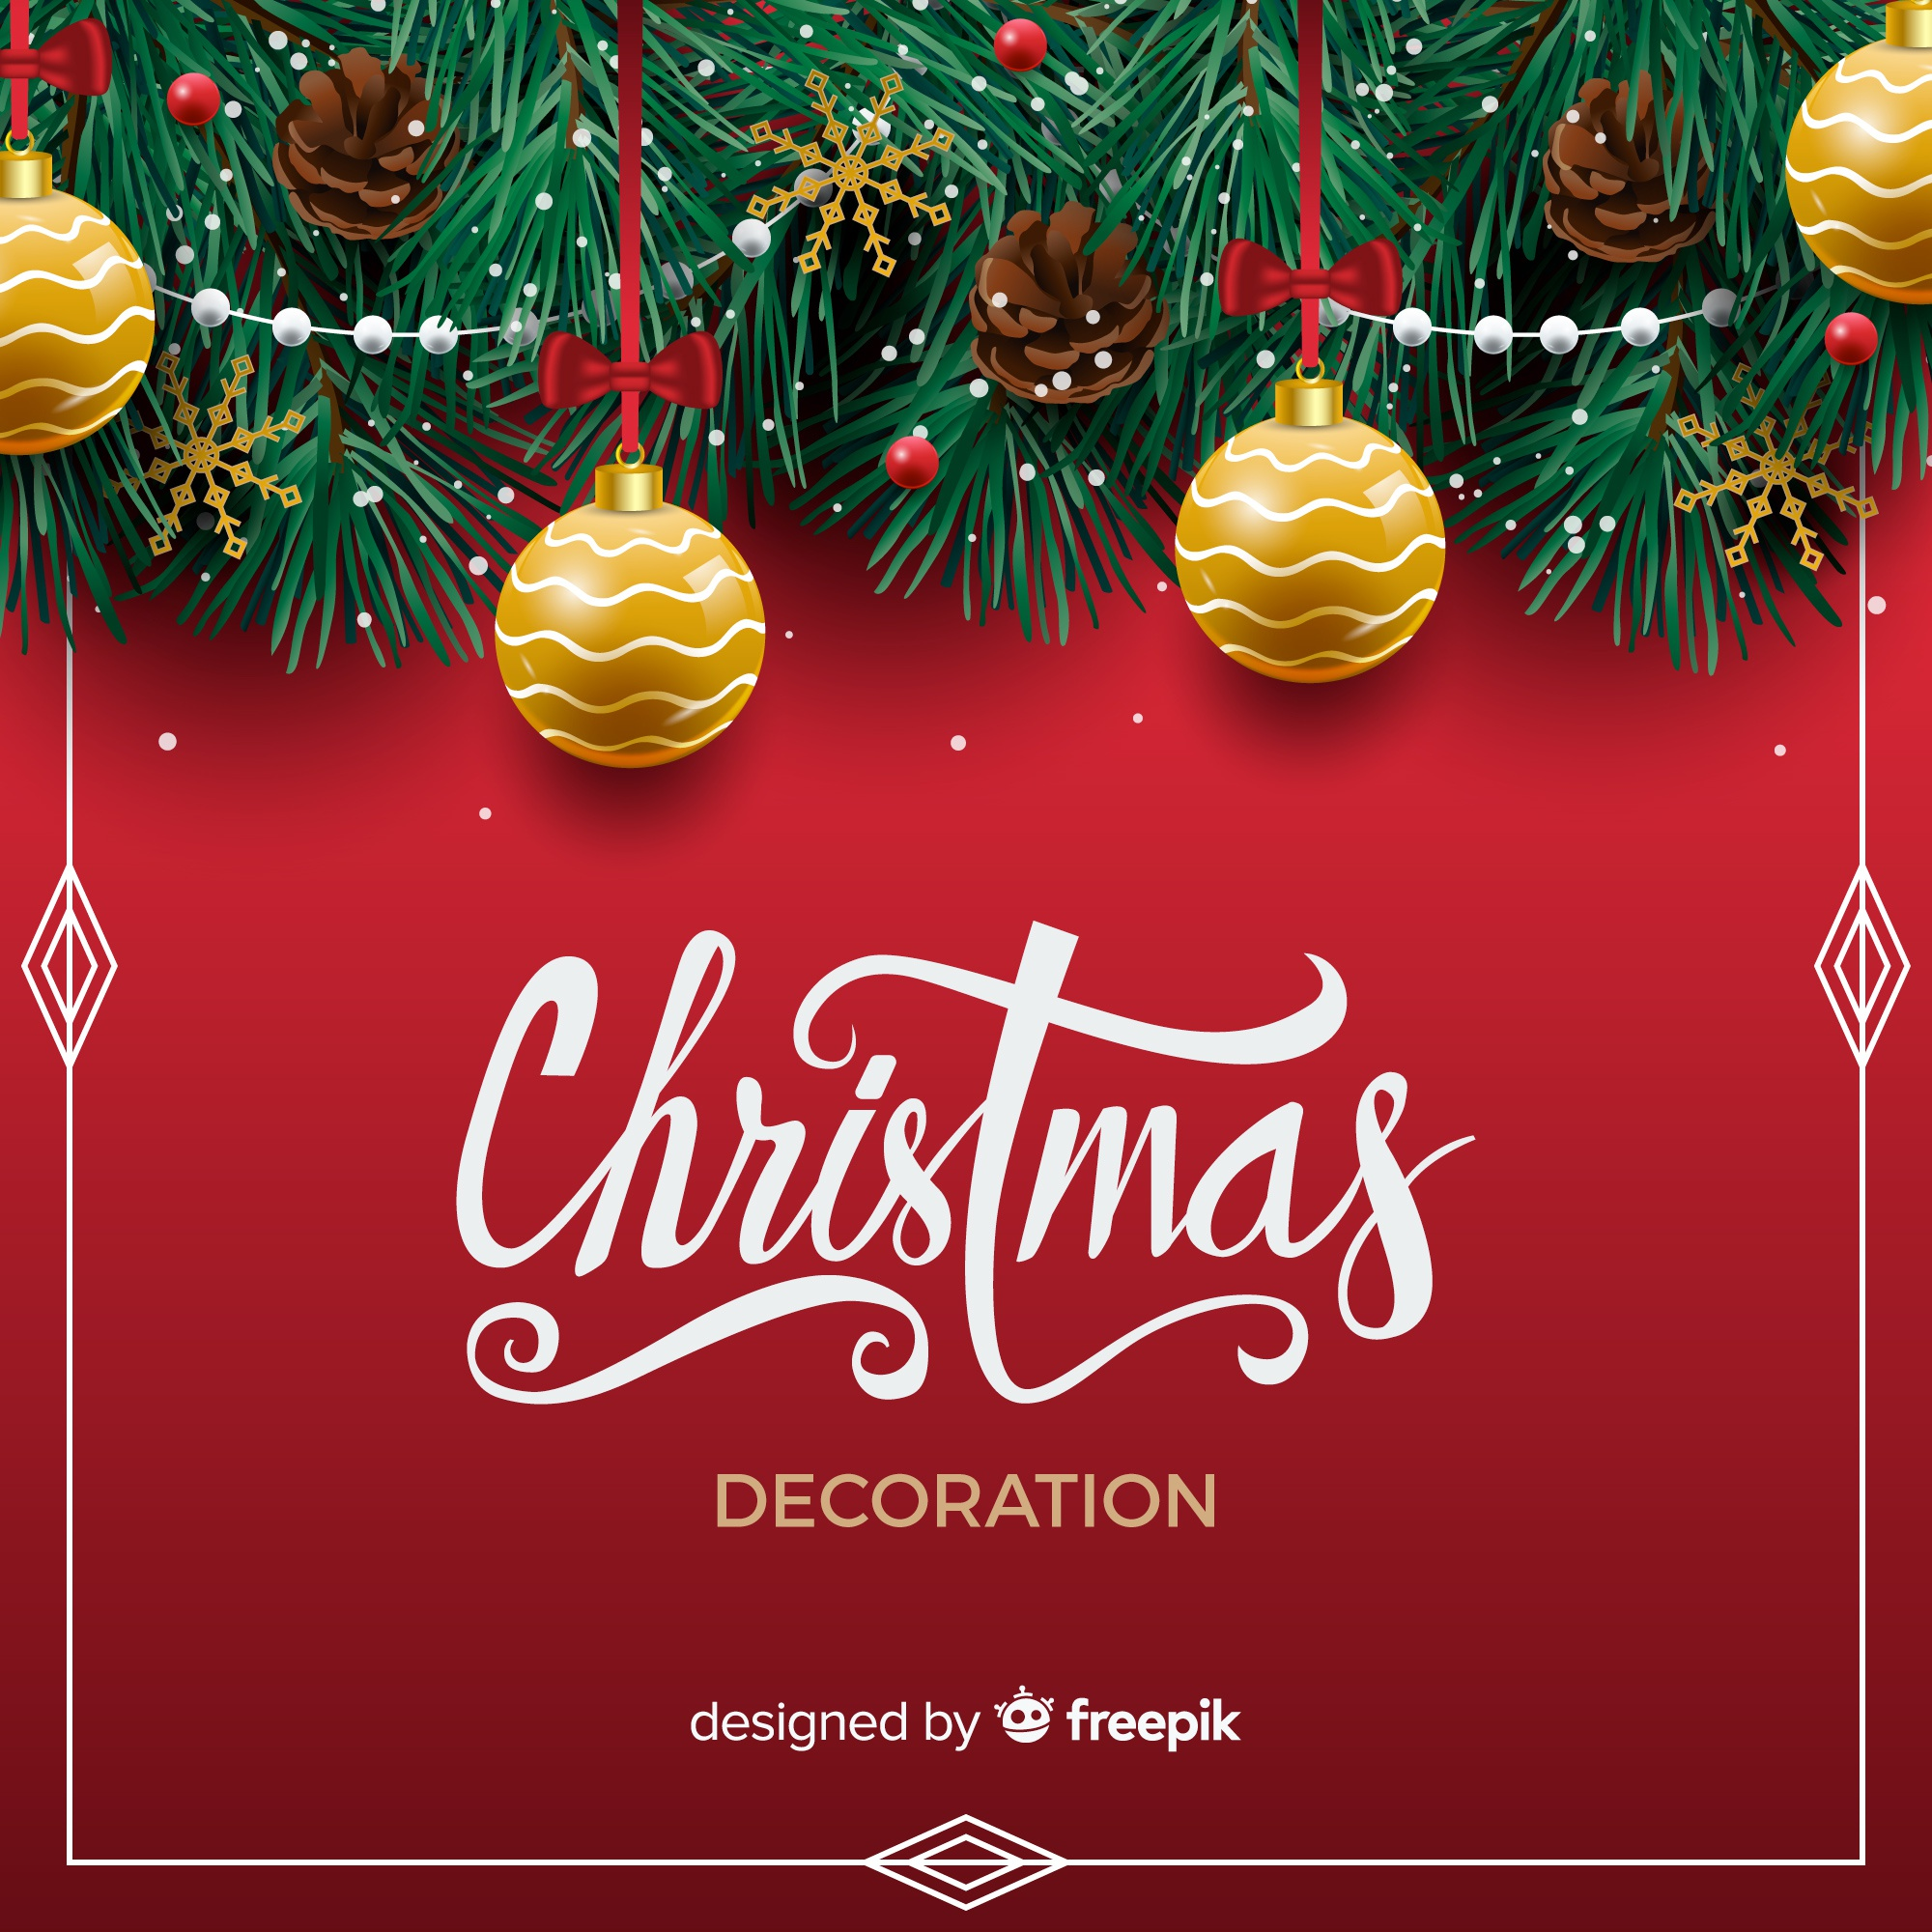 christmas background with realistic decoration - Christmas Decor Catalogs Free